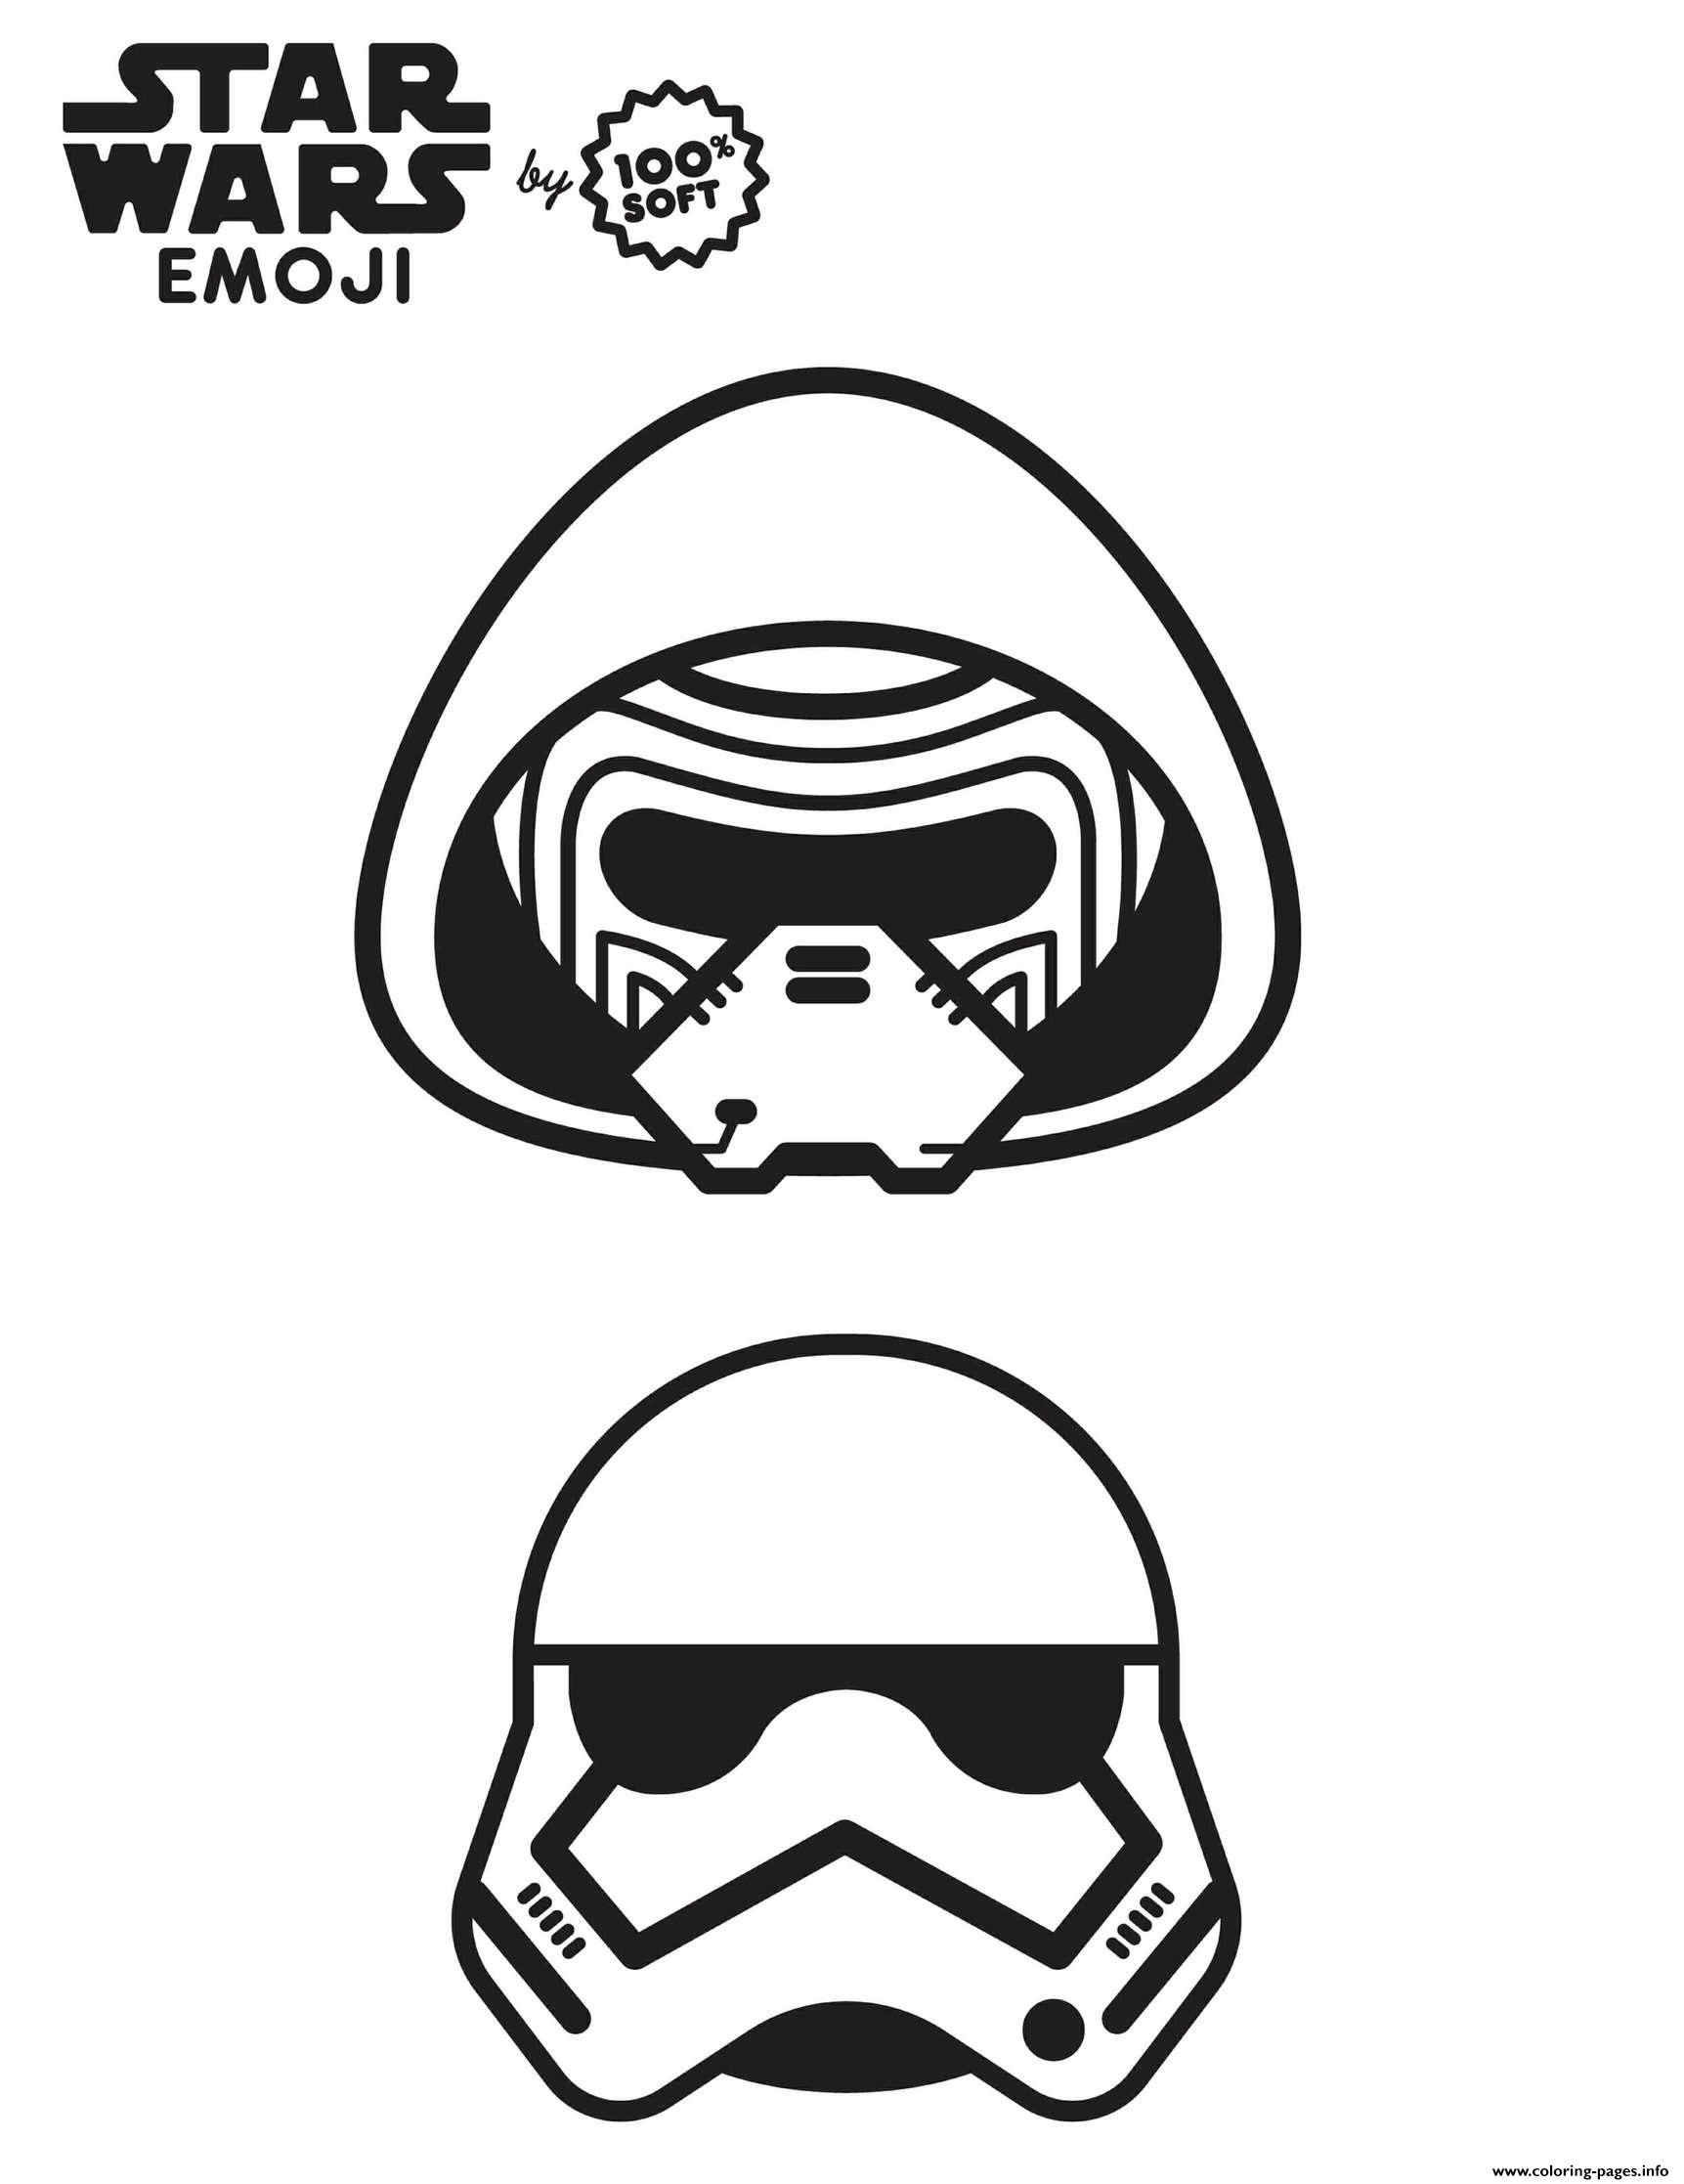 photograph relating to Stormtrooper Printable titled Star Wars Stormtrooper Emoji Coloring Webpages Printable